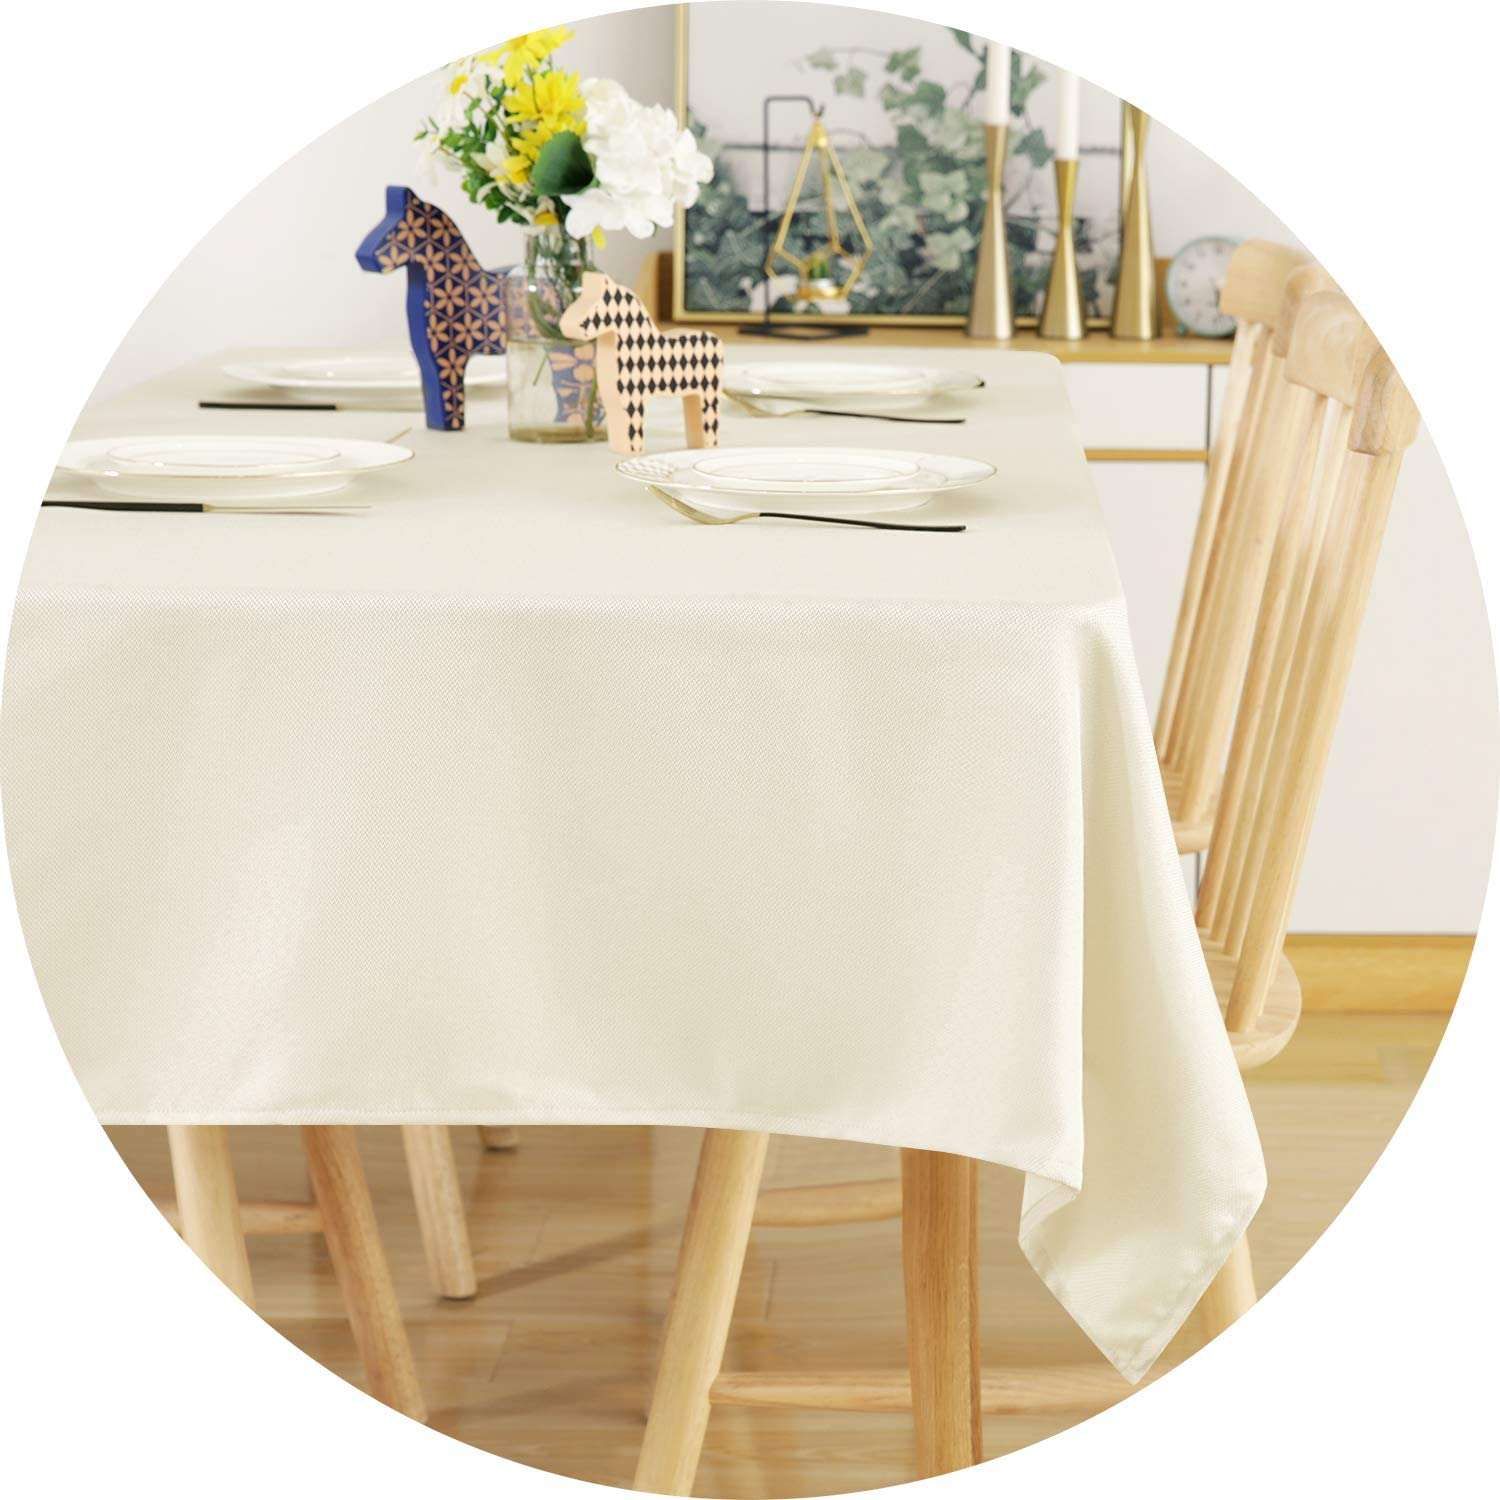 Deconovo Water Resistant Tablecloth Beige Table Covers Sprillproof Tablecloth for Kitchen Dining Tabletop Decoration 54x72 Inches Beige